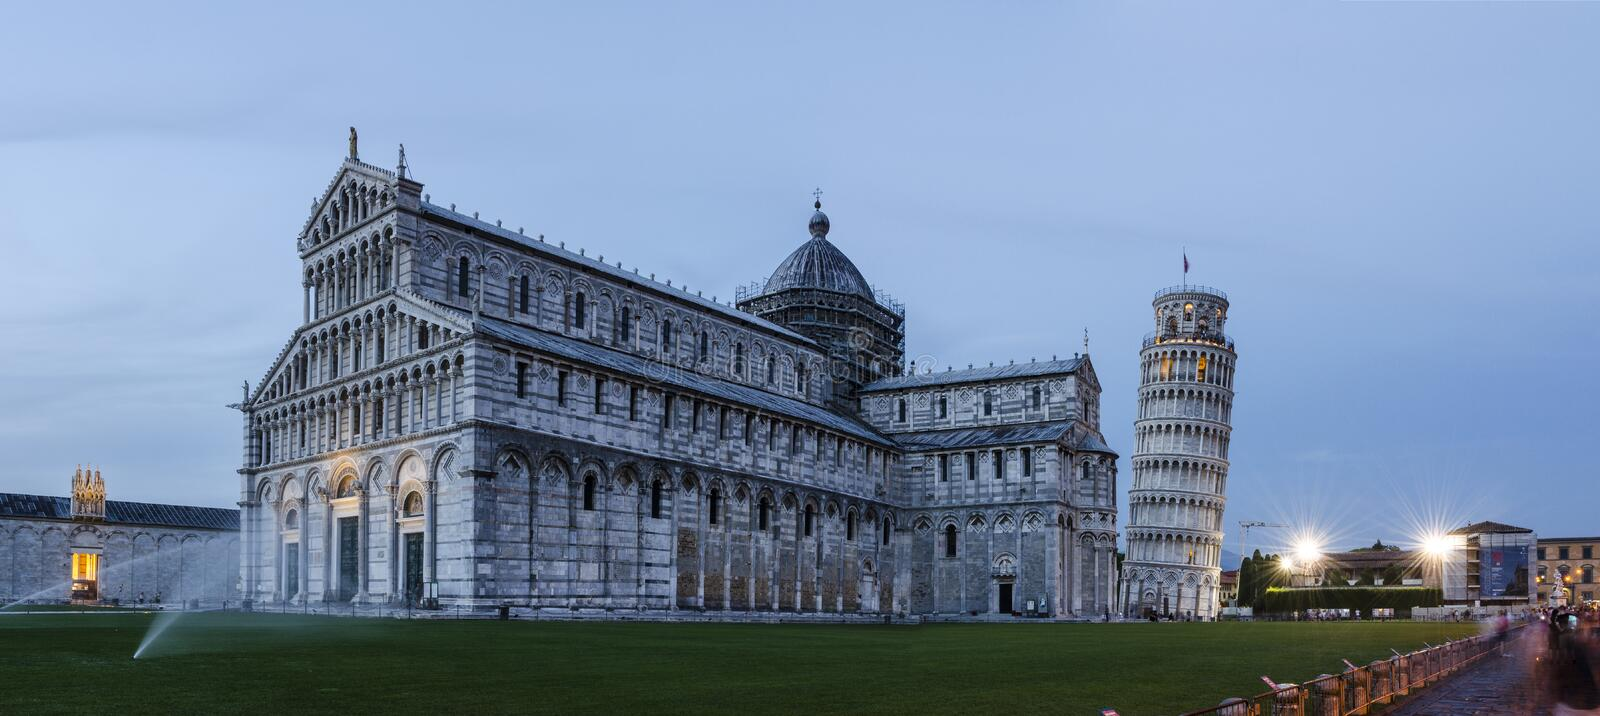 Panorama of the Pisa Cathedral & Leaning Tower at night royalty free stock photo